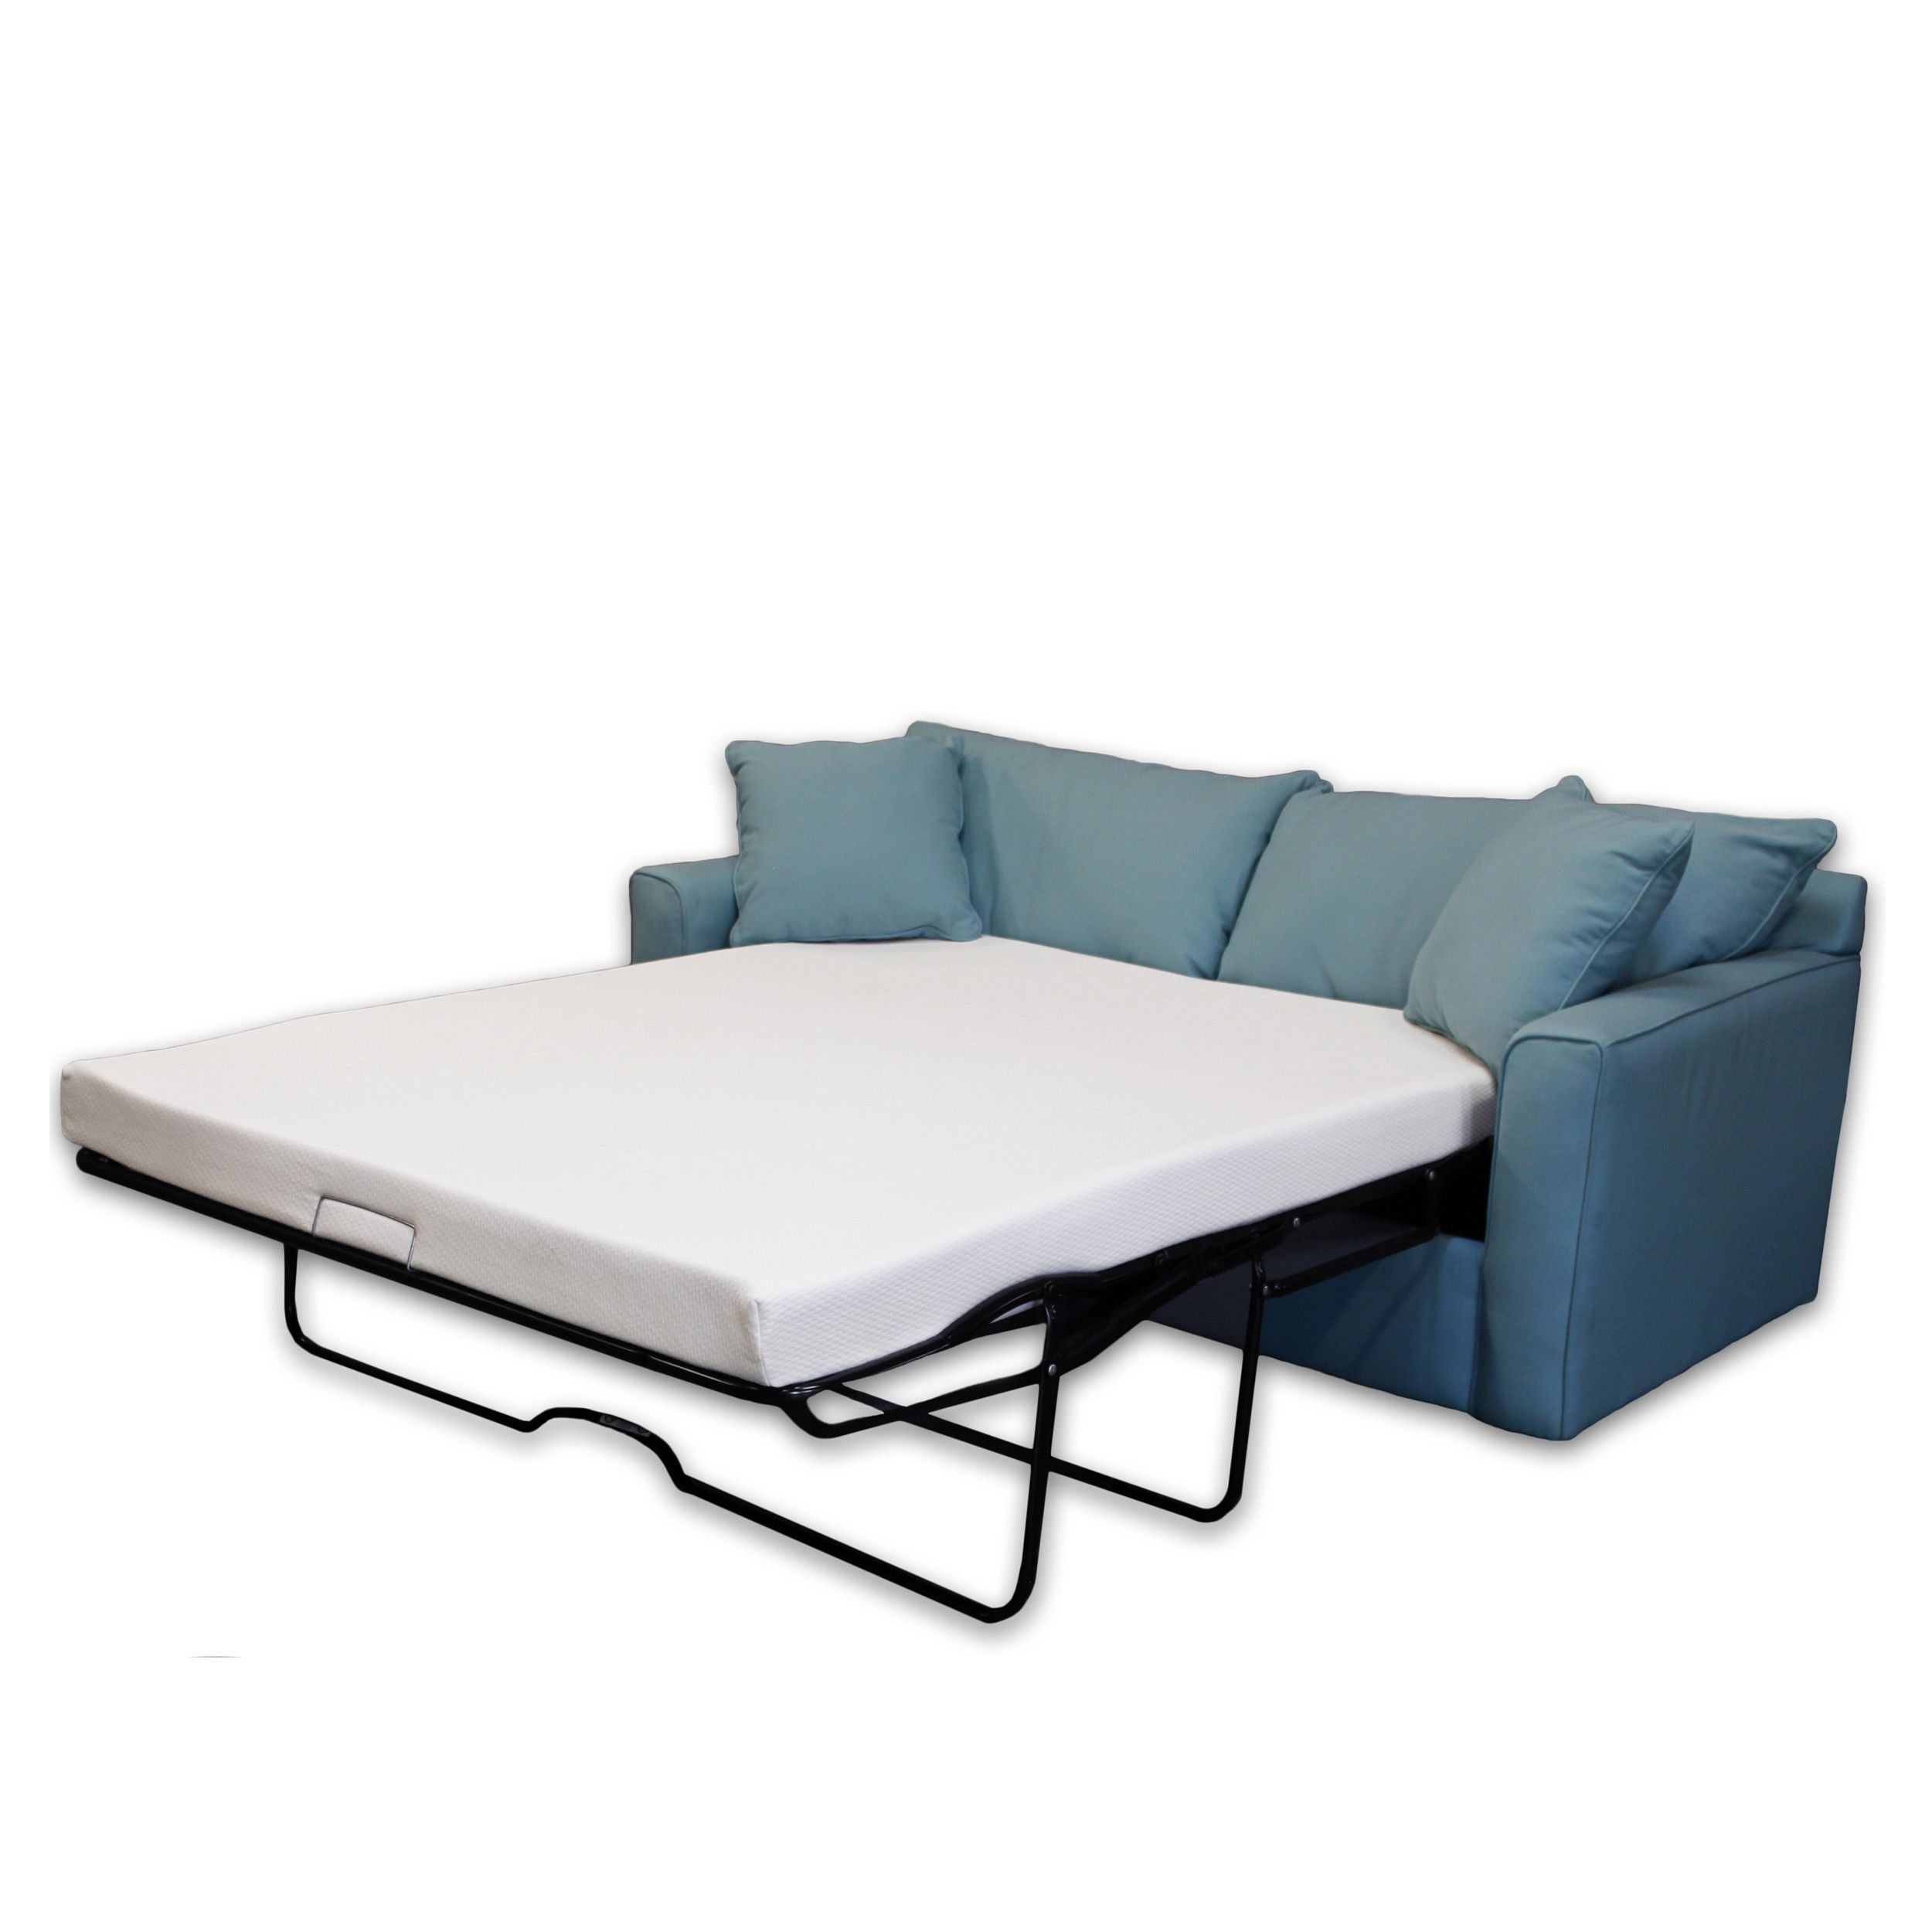 4 5 Inch Full Size Memory Foam Sofa Bed